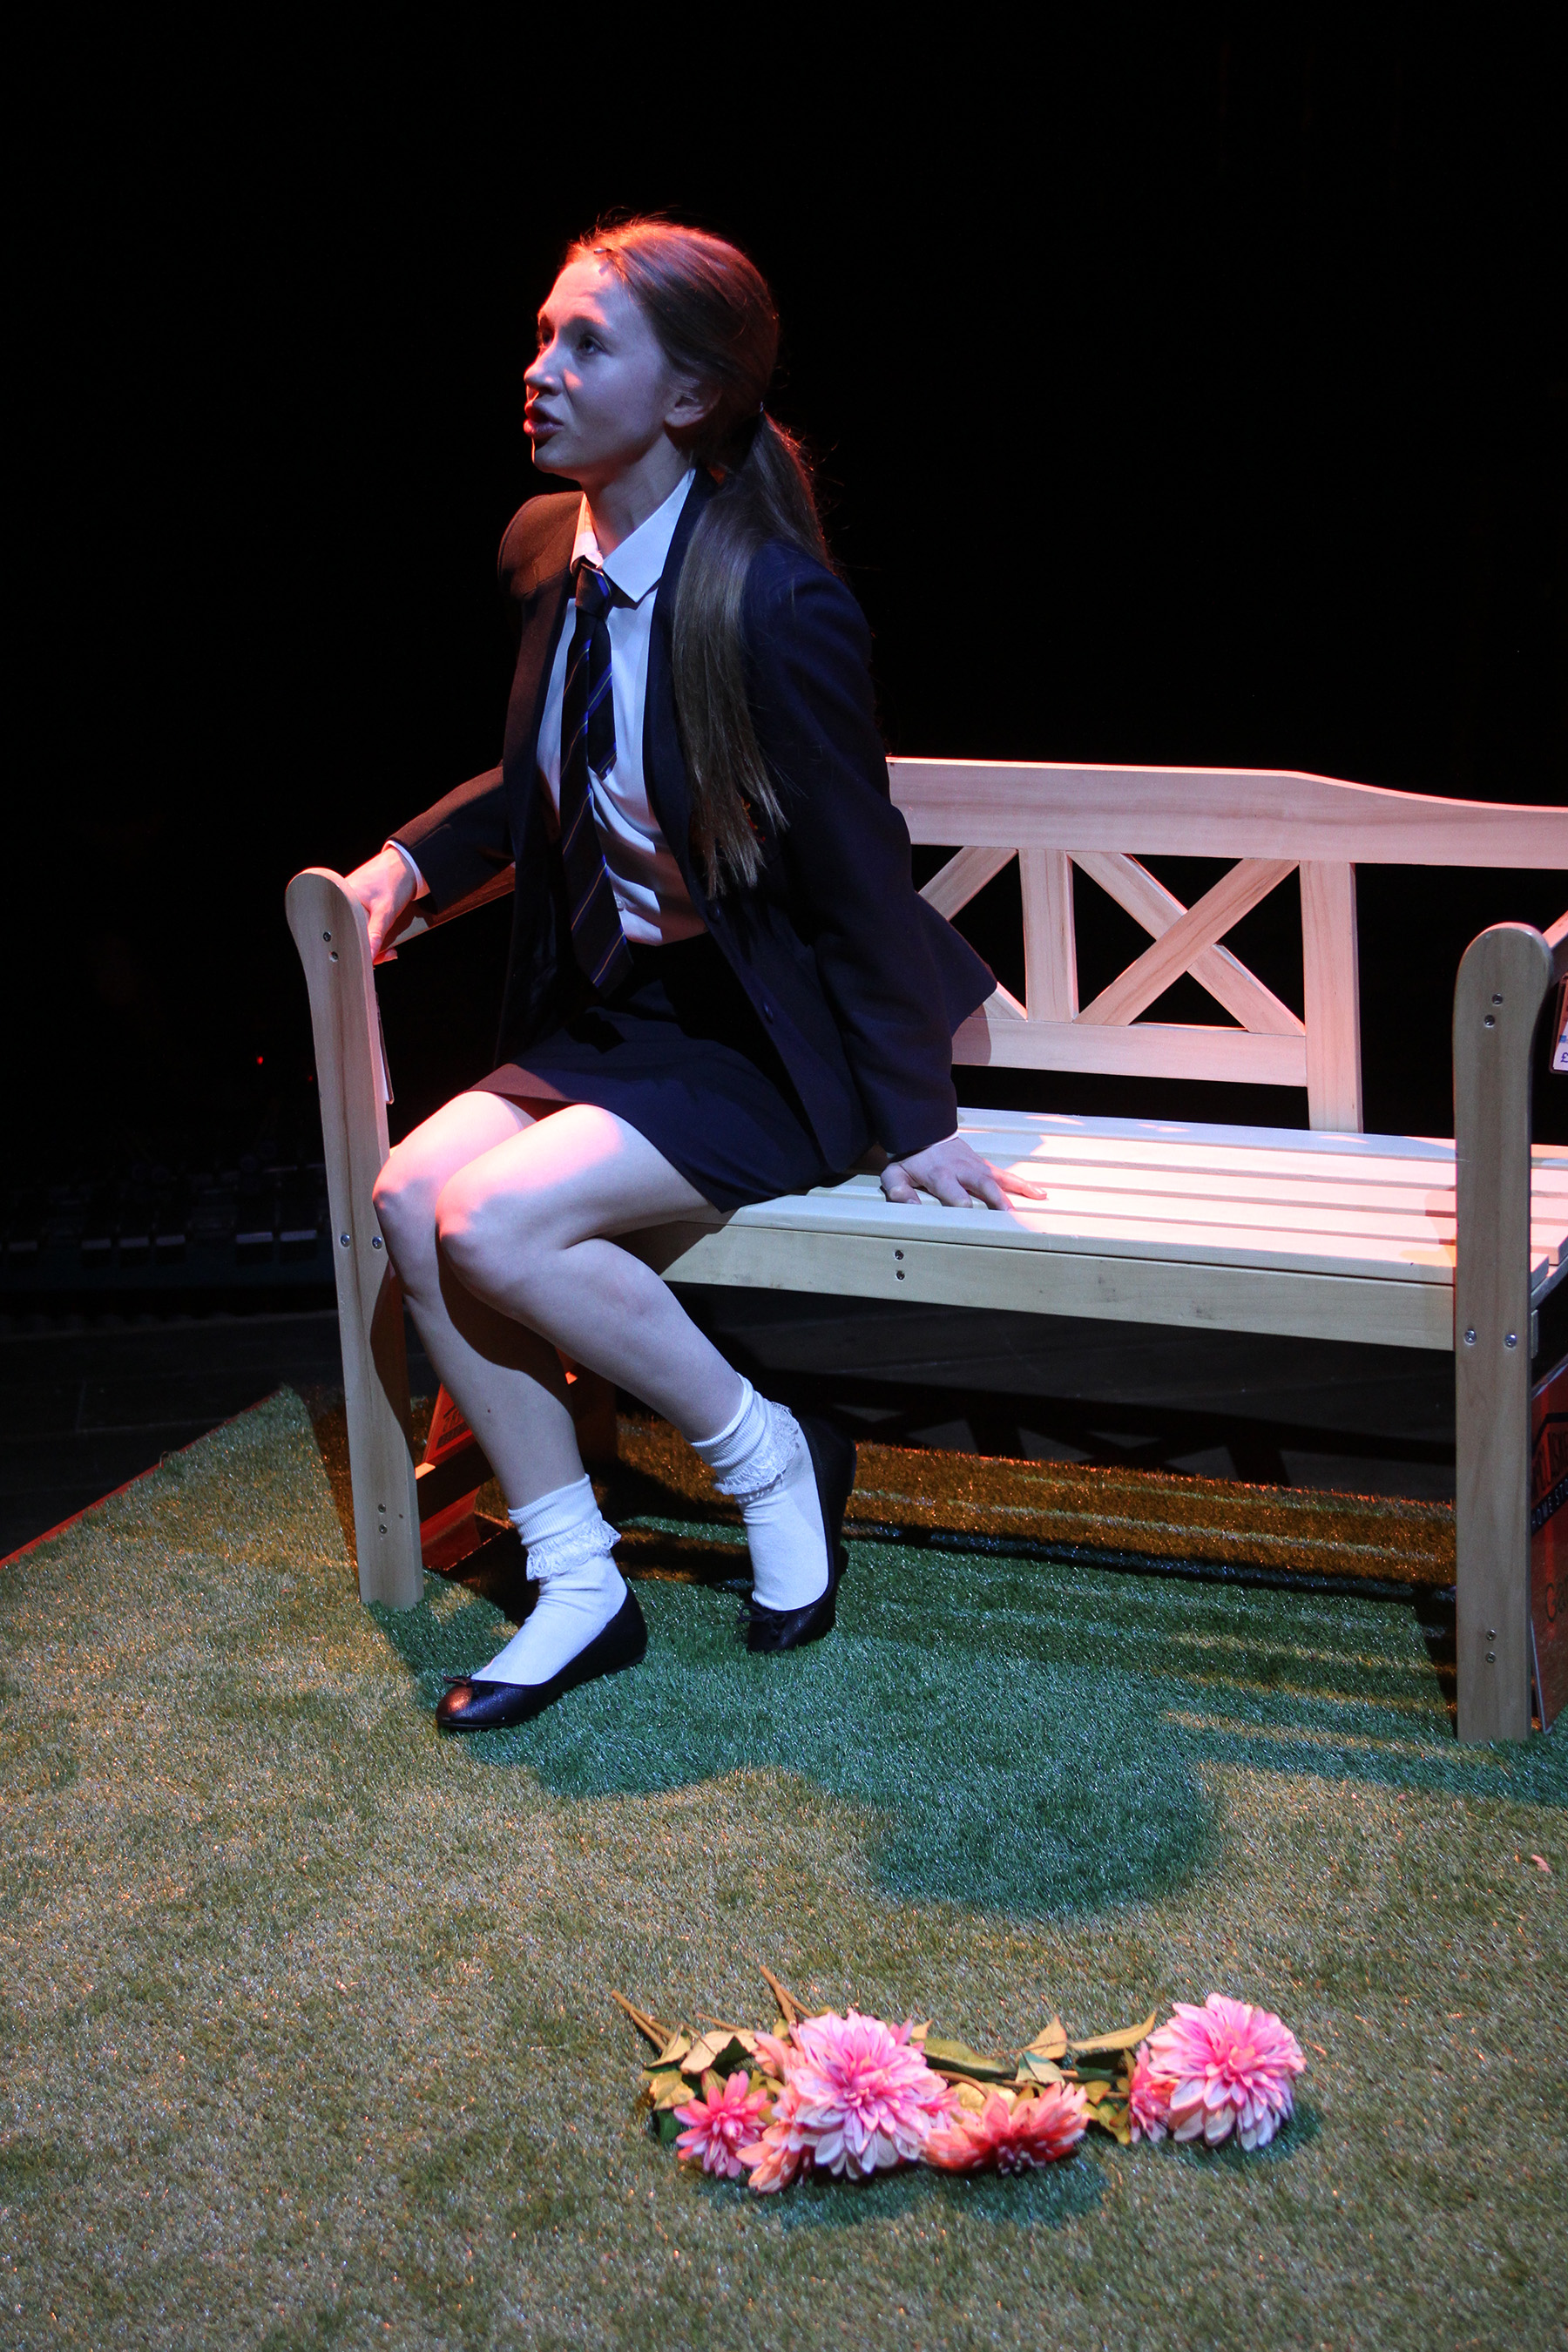 Emily Hughes in The Sum, photograph by Stephen Vaughan IMG_2422